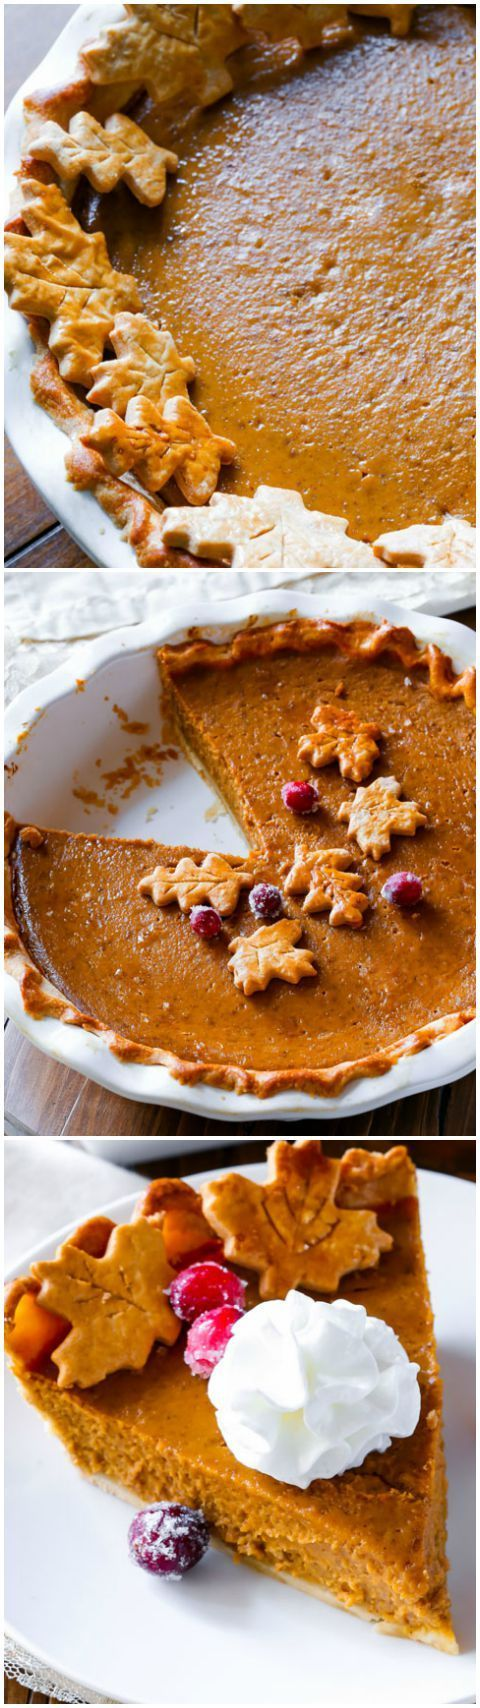 I call this the GREAT pumpkin pie recipe because it's my absolute favorite recipe for this Fall dessert!